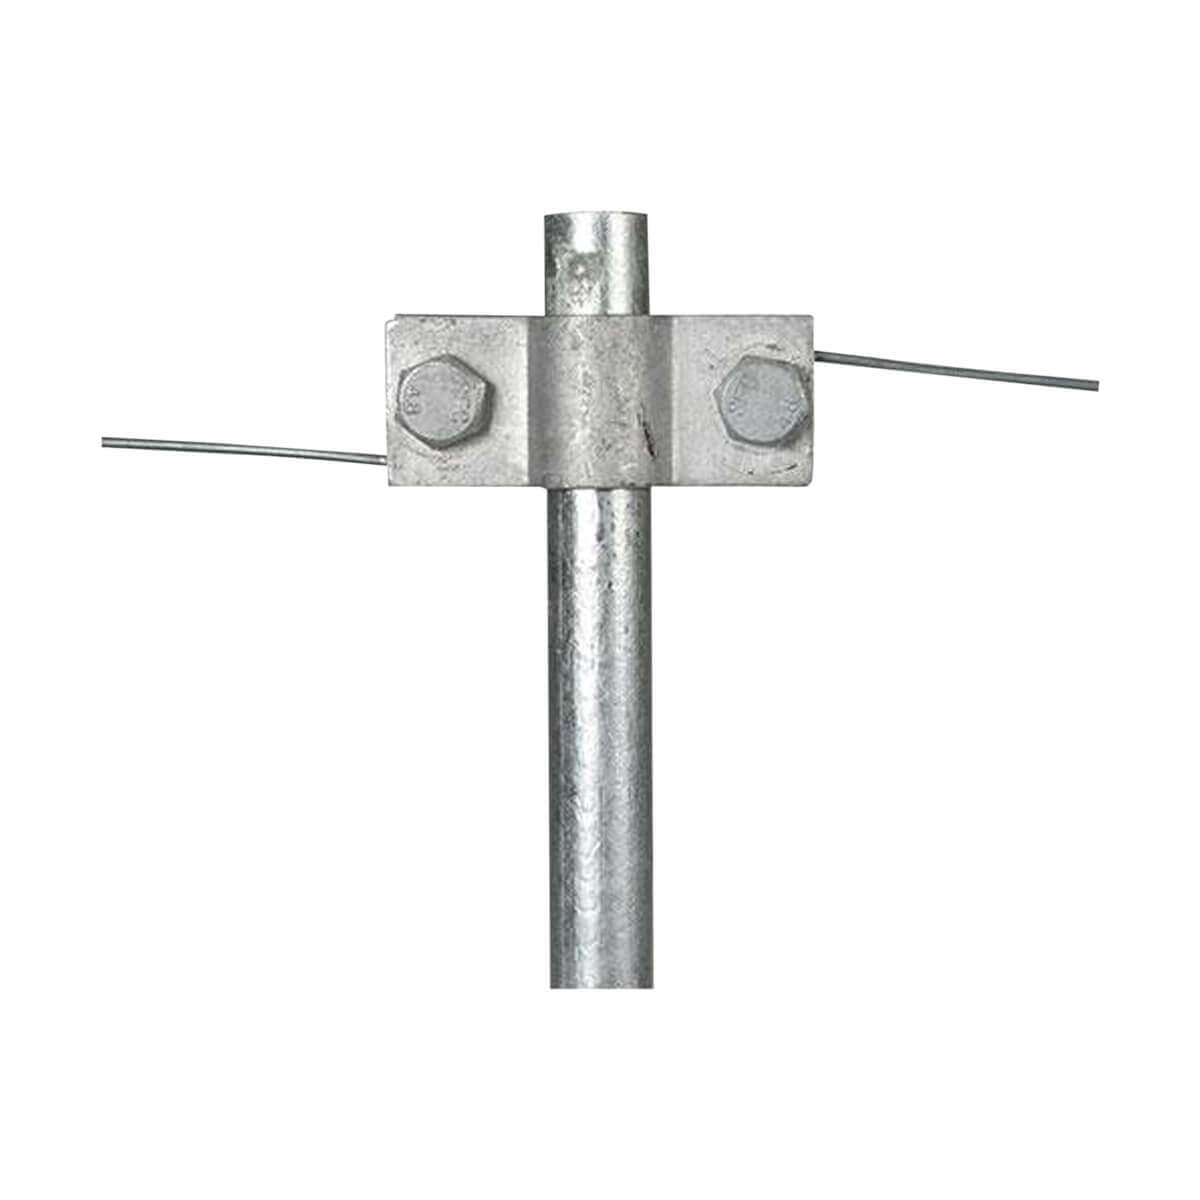 Gallagher Ground Clamp - 1 pack